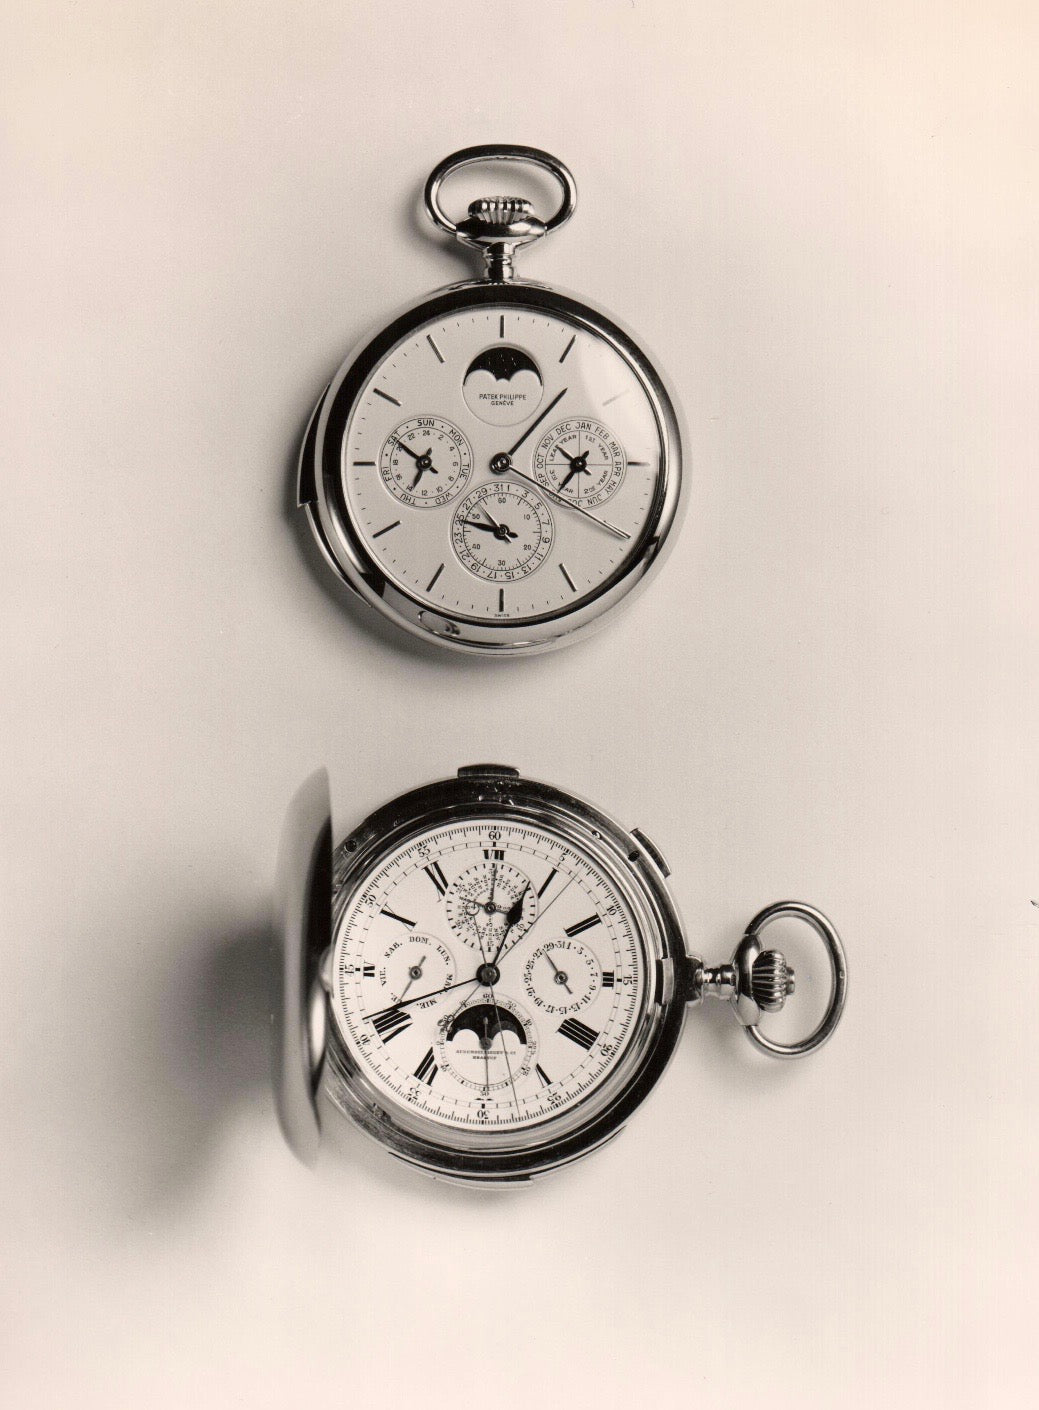 Auction catalogue showing 2 pocket watches in The Early Days of Vintage Wristwatch Collecting for A Collected Man London